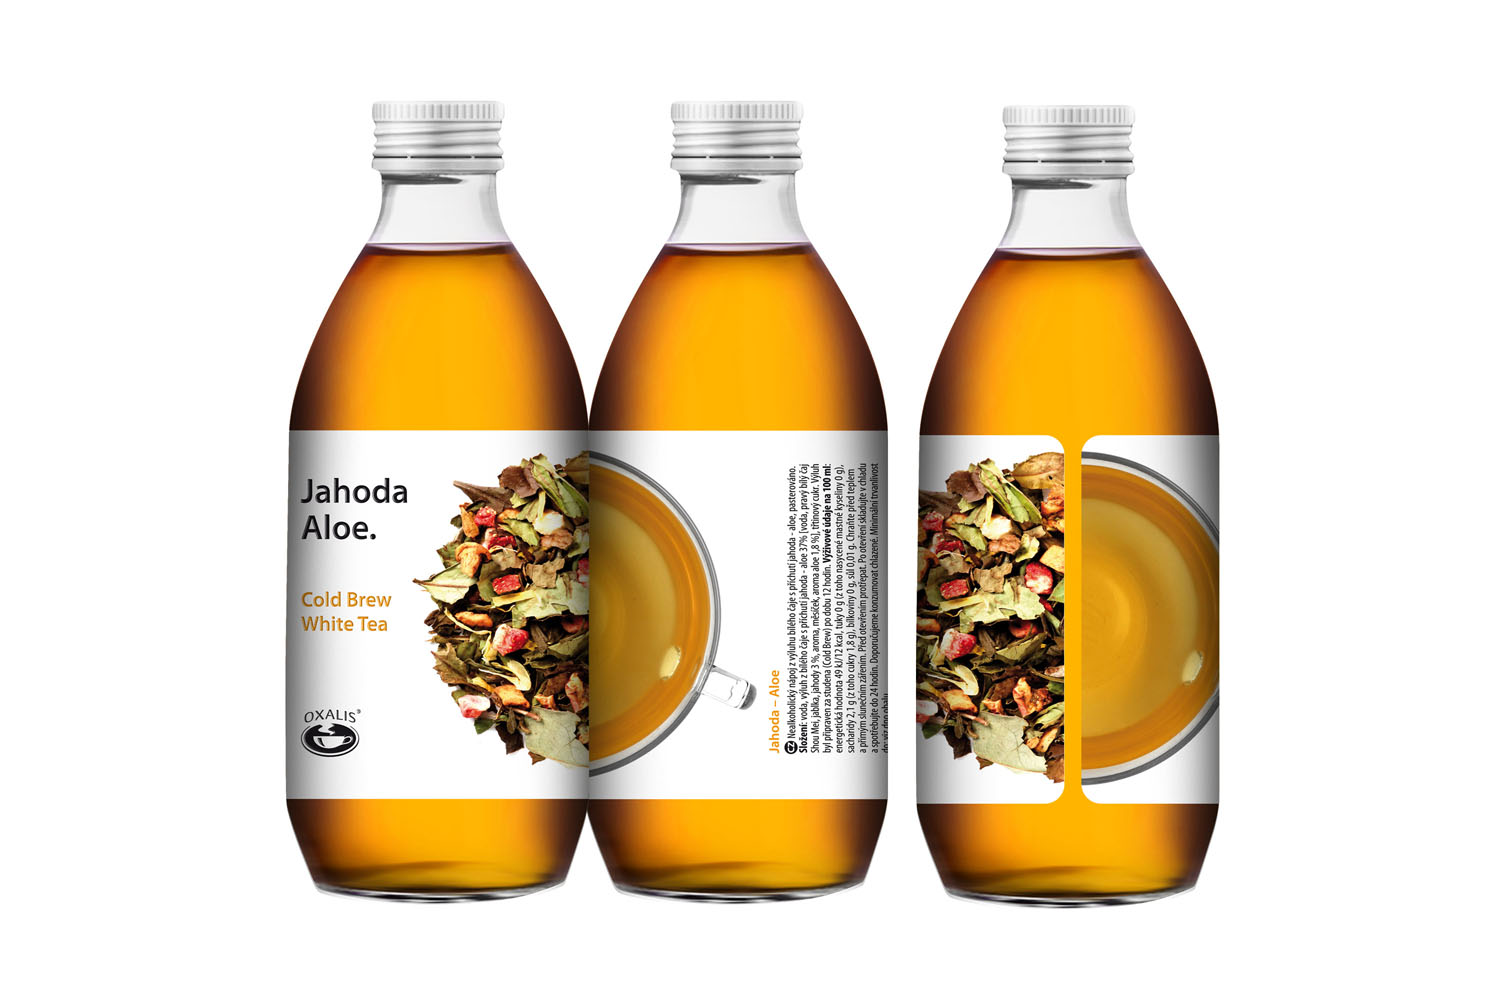 Jahoda - aloe - Cold Brew White Tea 330 ml